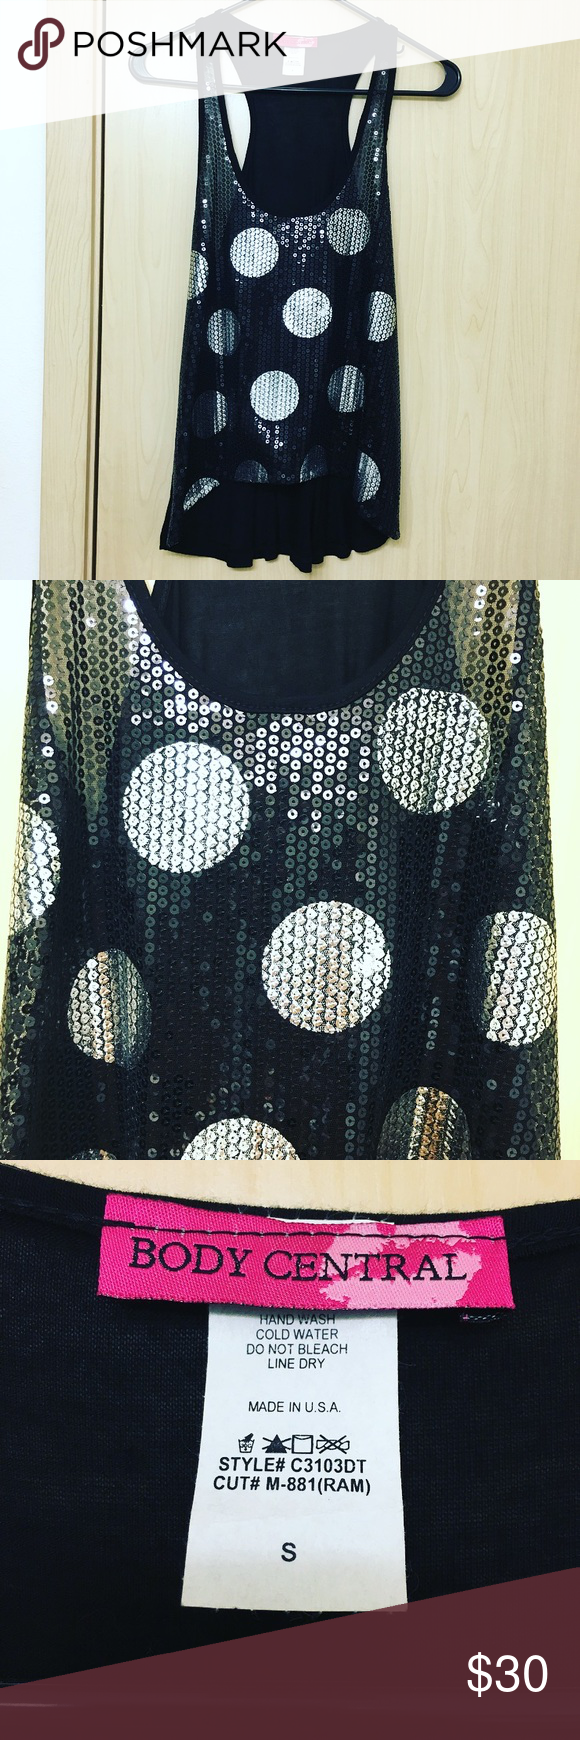 Body Central Black & Silver Polkadot Sequin Cami Body Central Black Silver Polkadot High-Low Tank. NWOT. Bought & never worn. Perfect condition. Size small. Body Central Tops Camisoles